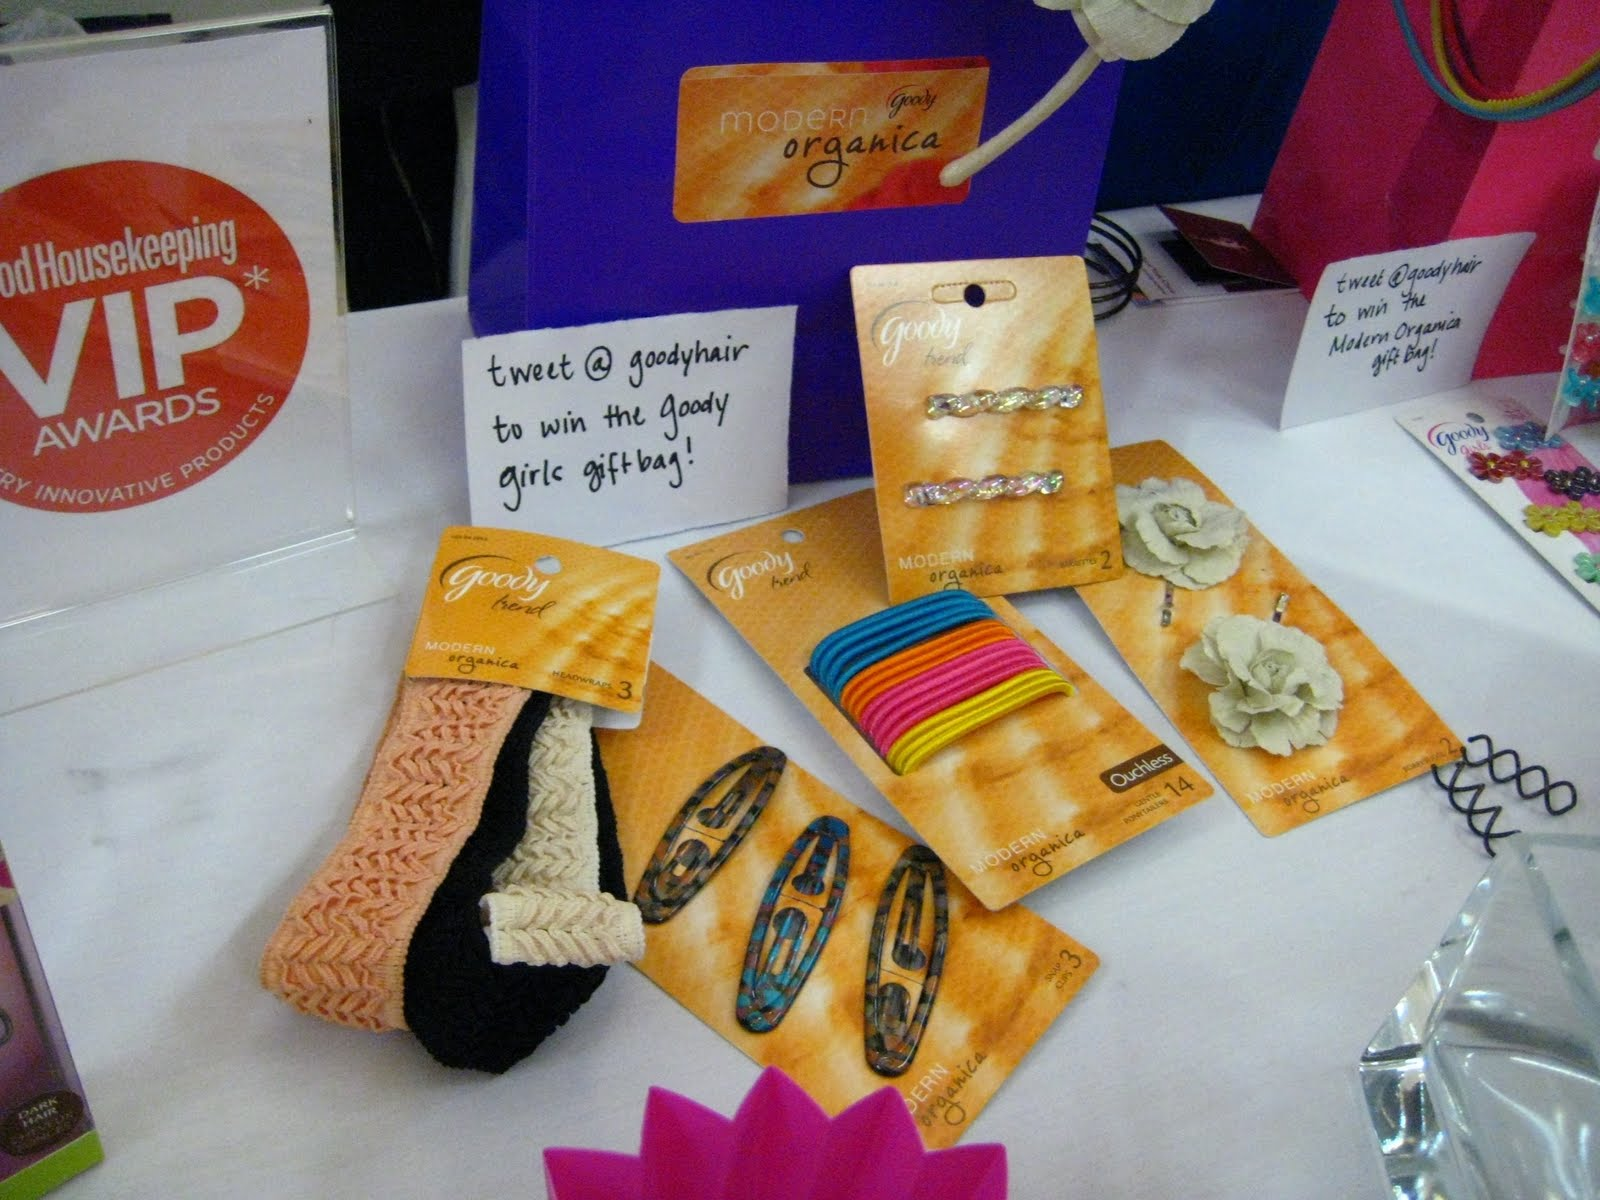 Beauty Amp All That Goody Hair Products Featured At The